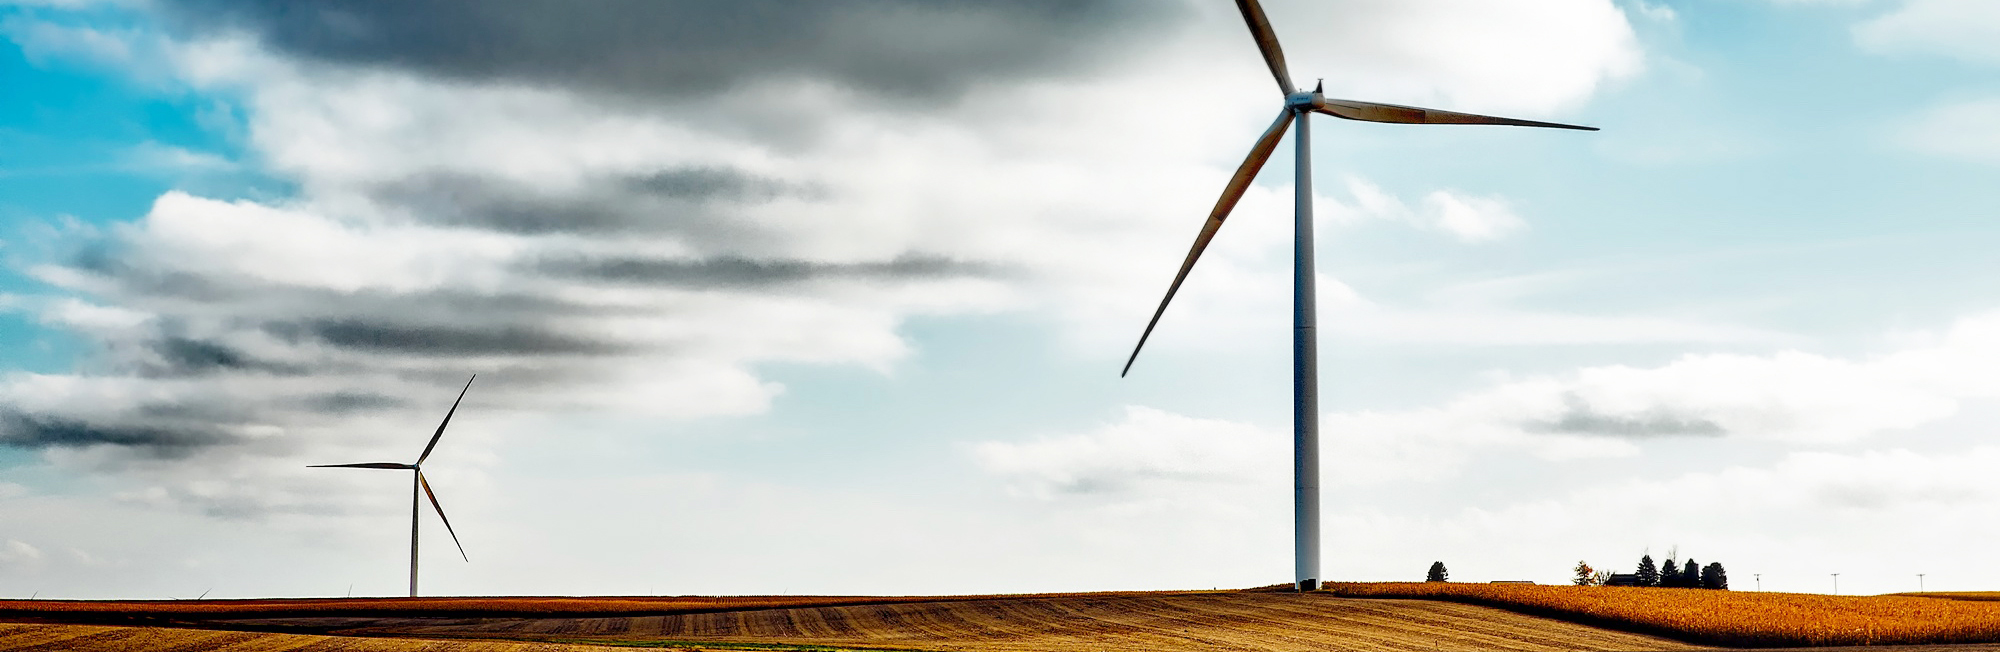 image-web-wind-farm-1747331